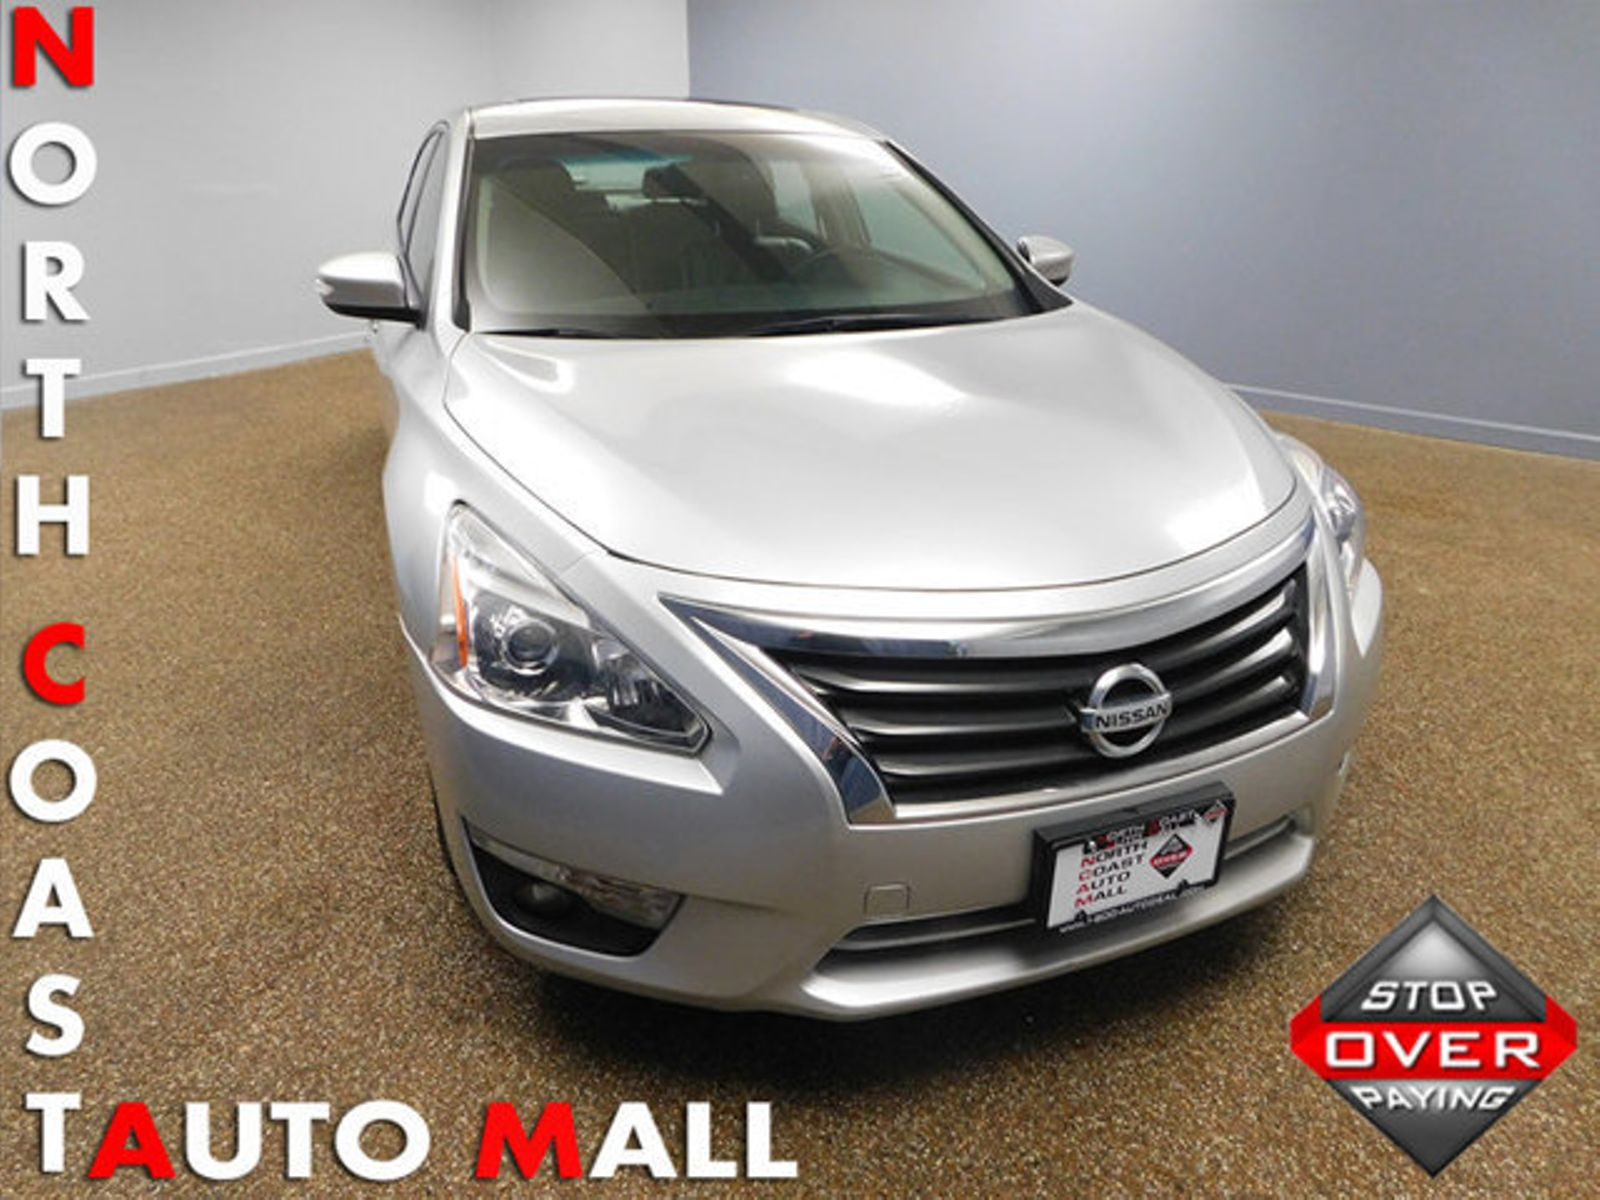 Nissan Altima: Extended storage switch (if soequipped)